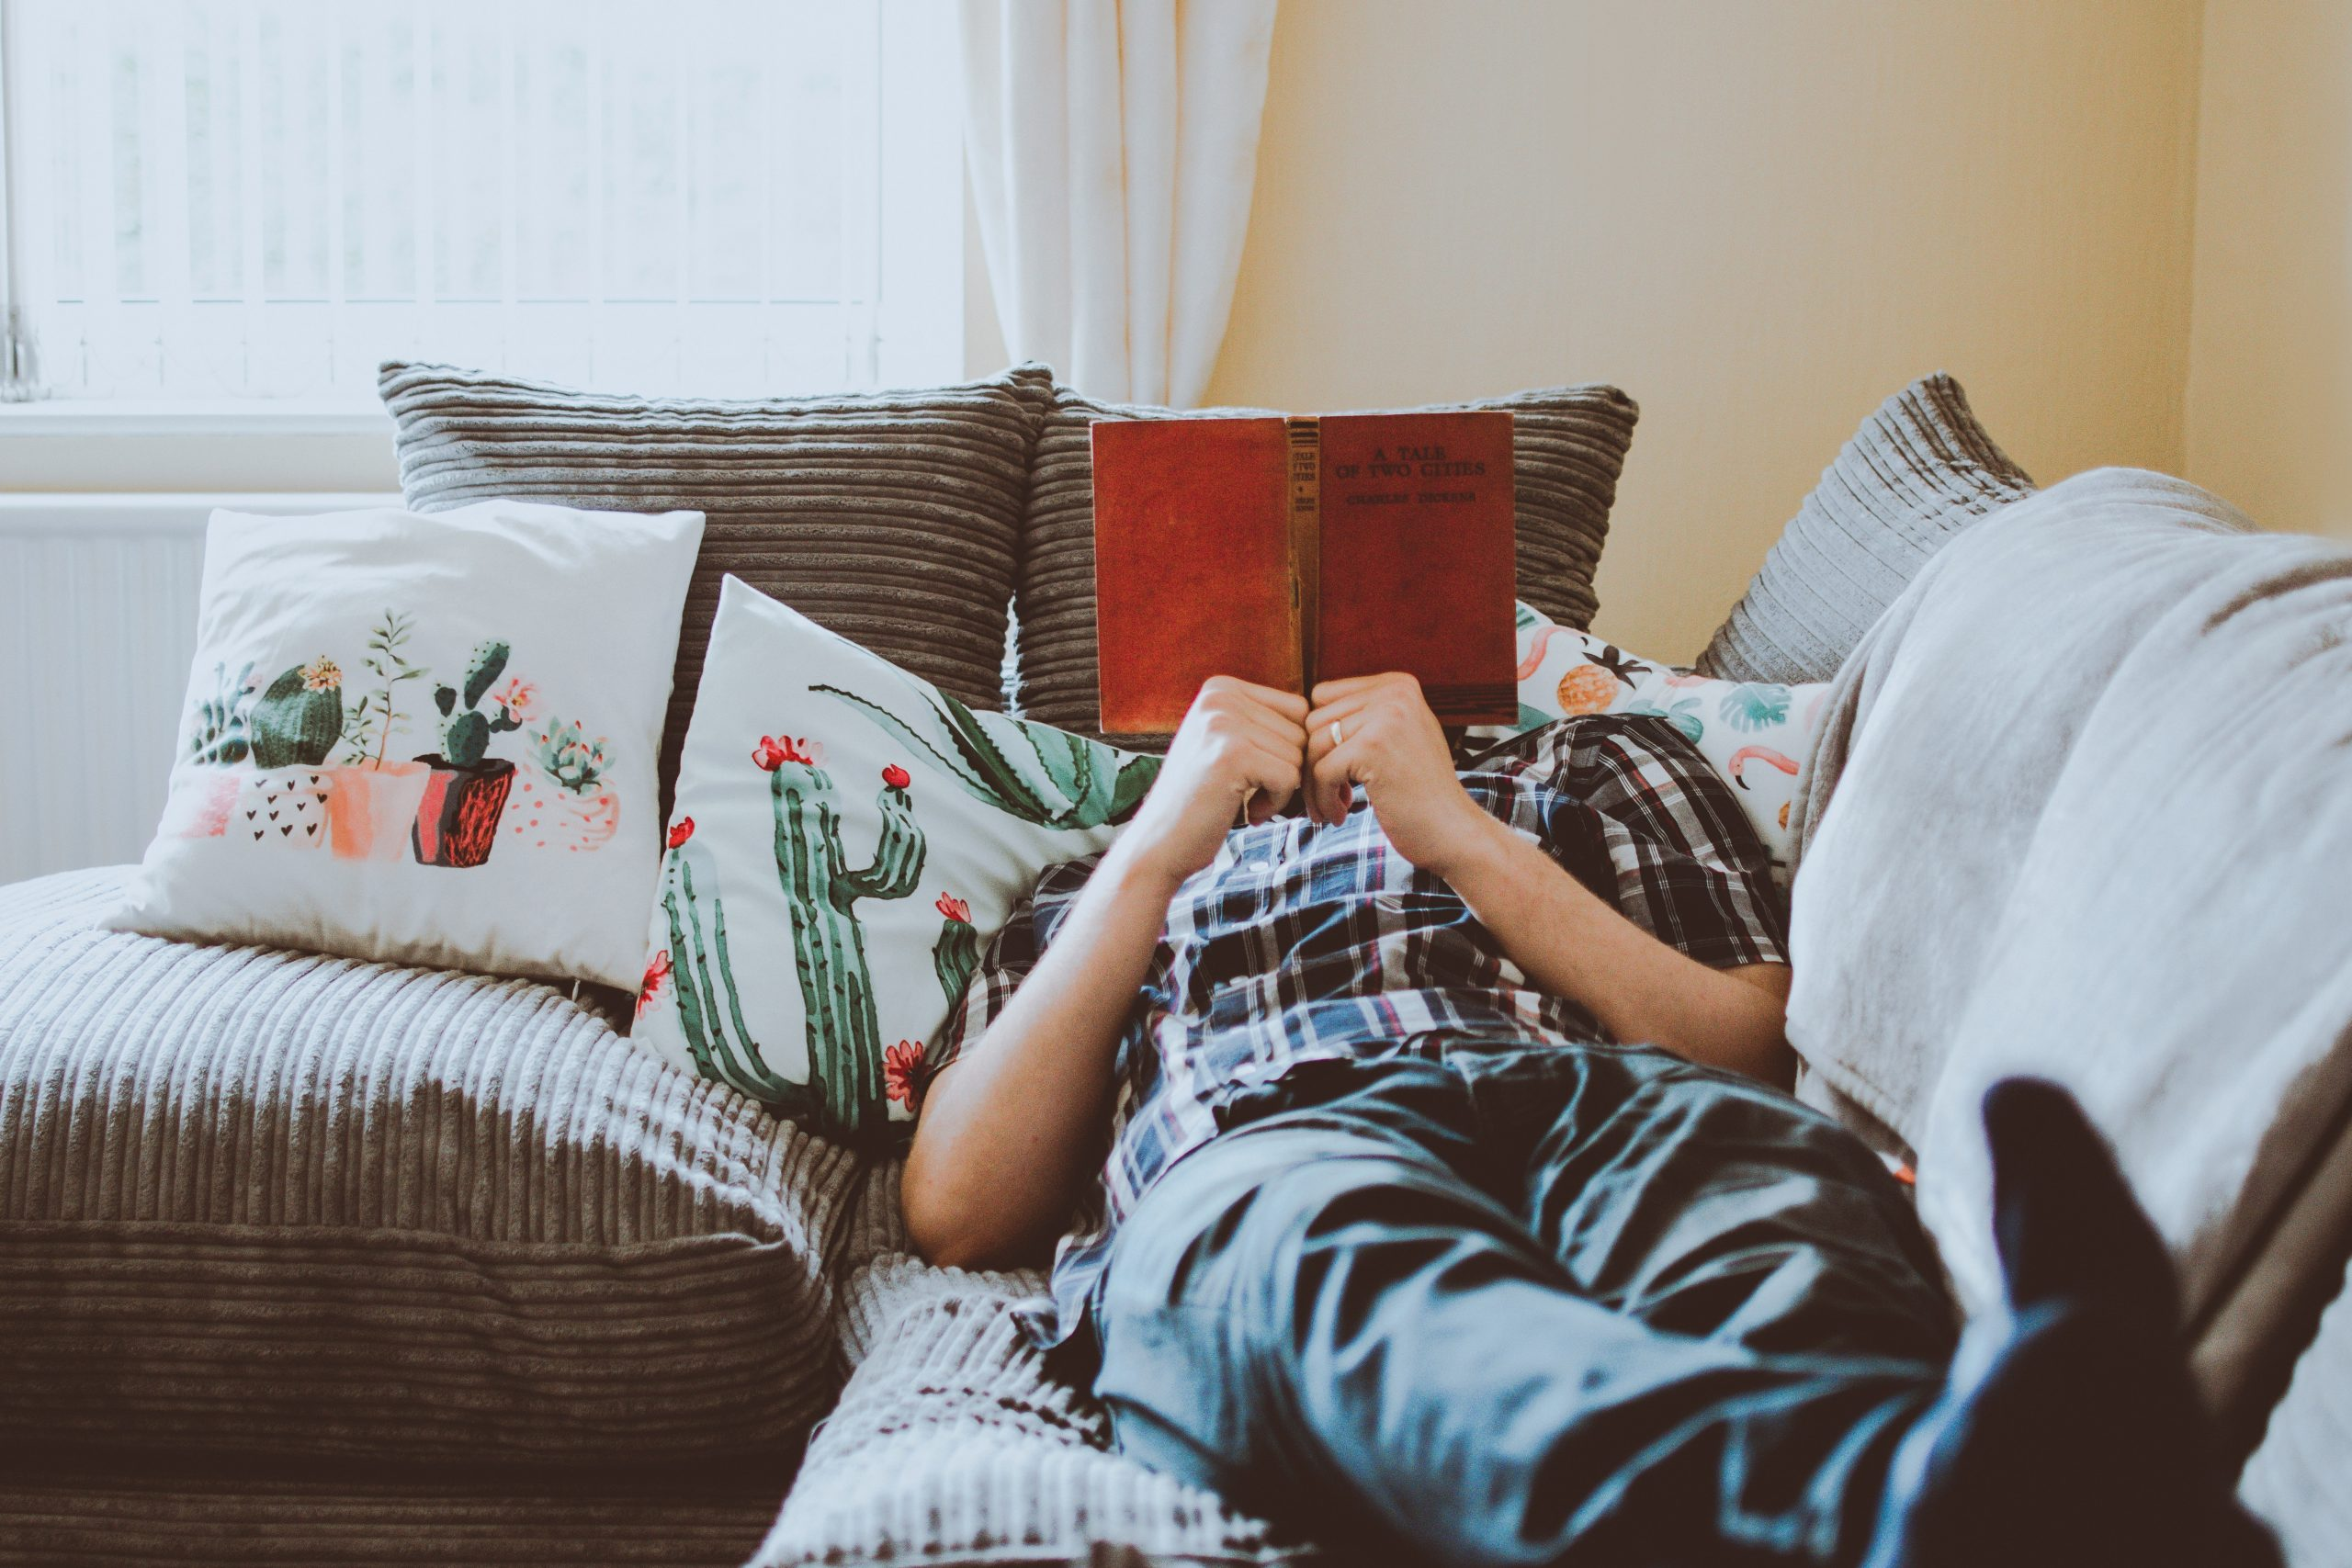 person-laying-on-sofa-while-reading-book-1471991.jpg